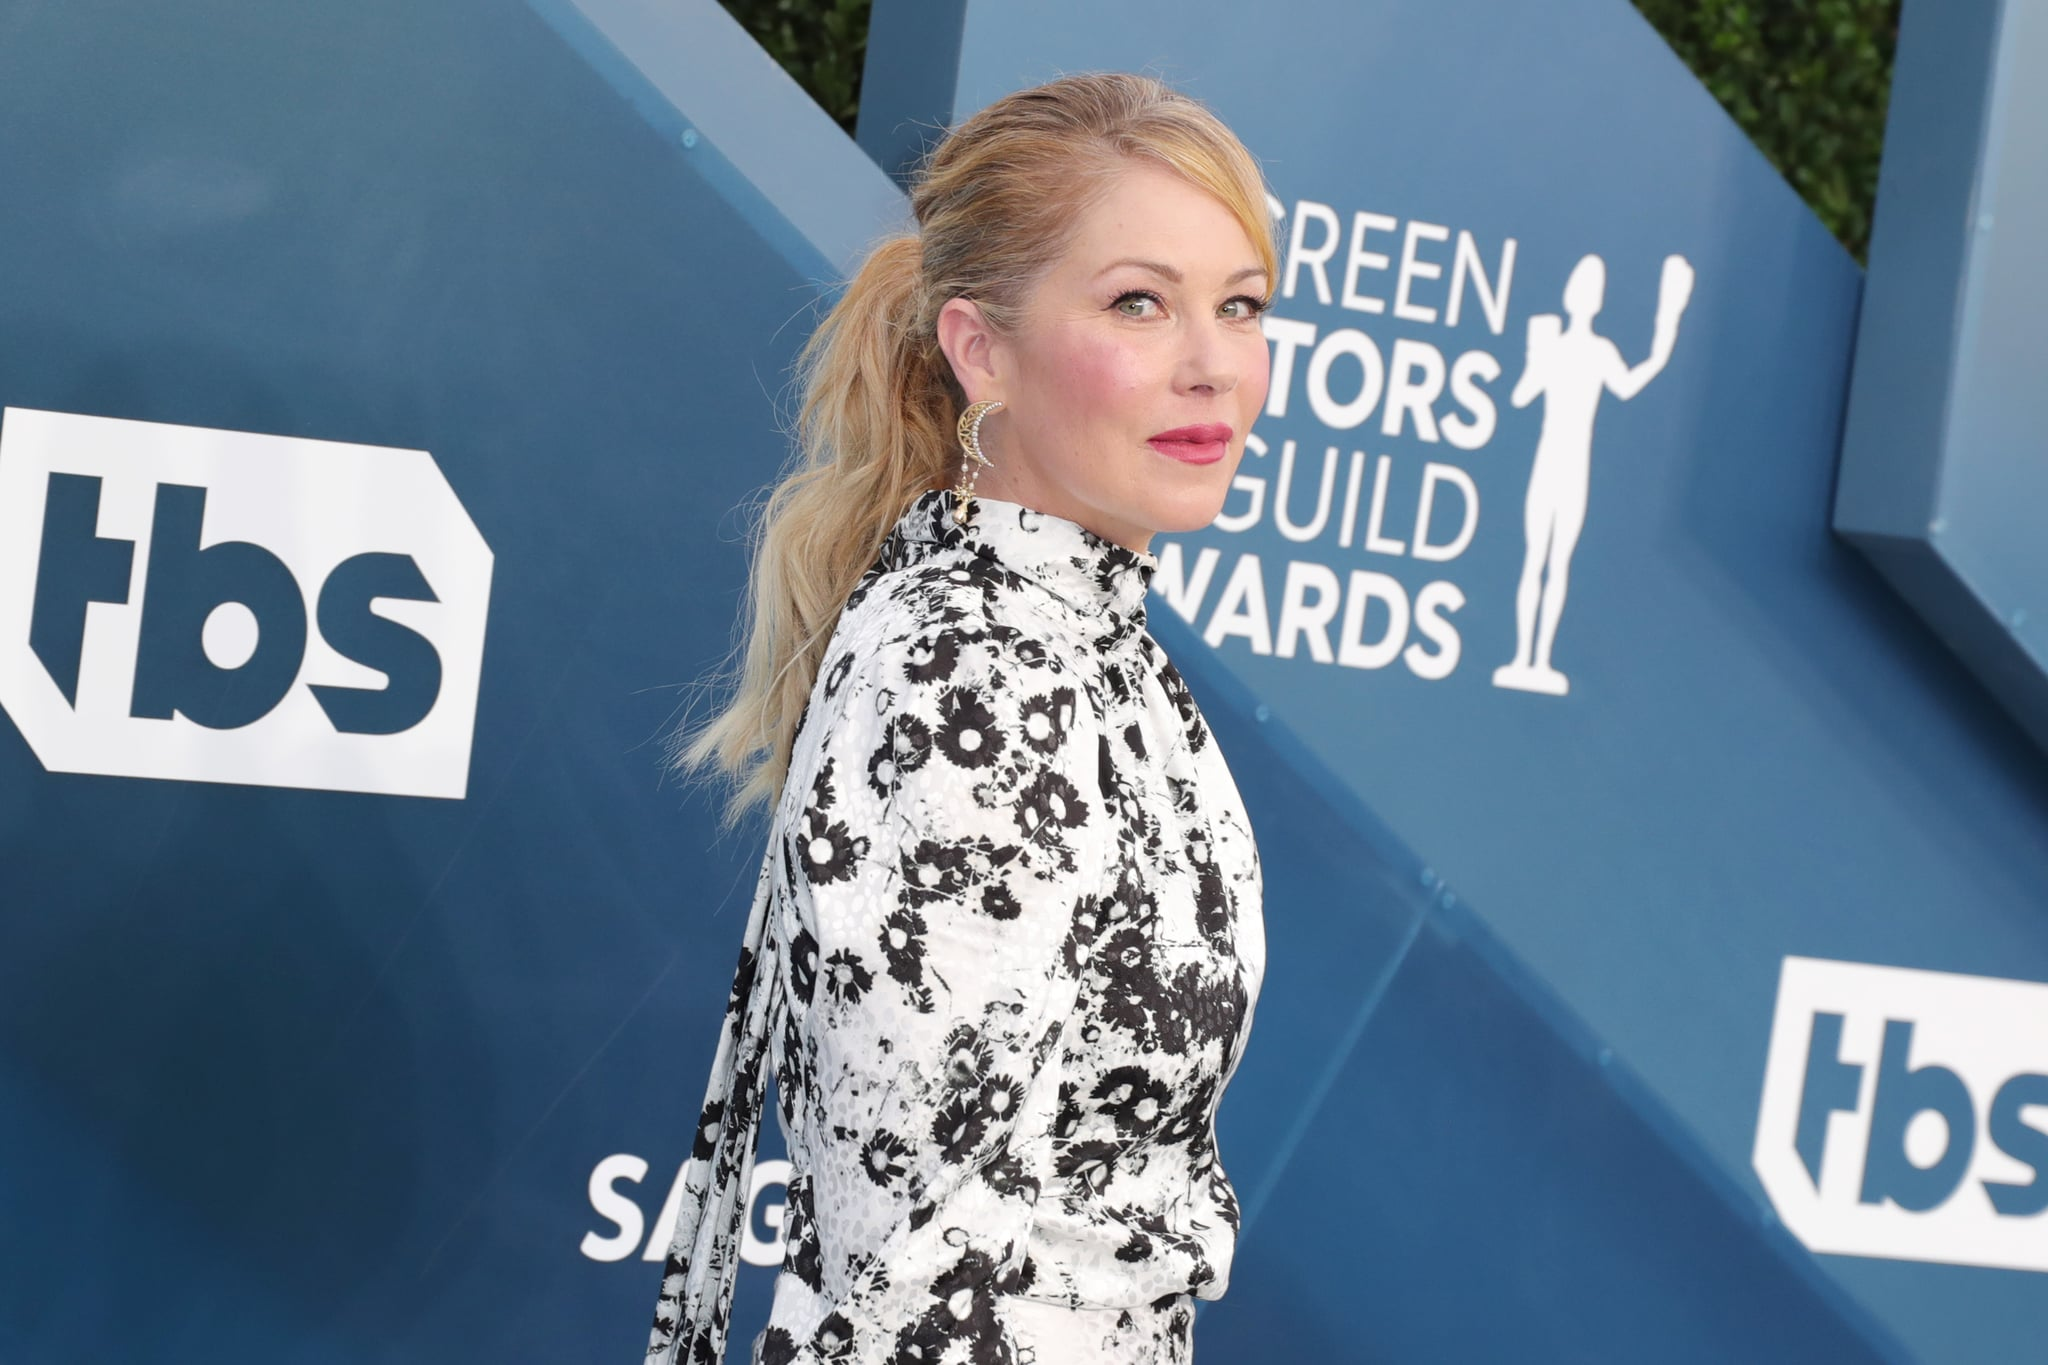 LOS ANGELES, CALIFORNIA - JANUARY 19: Christina Applegate attends 26th Annual Screen Actors Guild Awards at The Shrine Auditorium on January 19, 2020 in Los Angeles, California. (Photo by Leon Bennett/Getty Images)